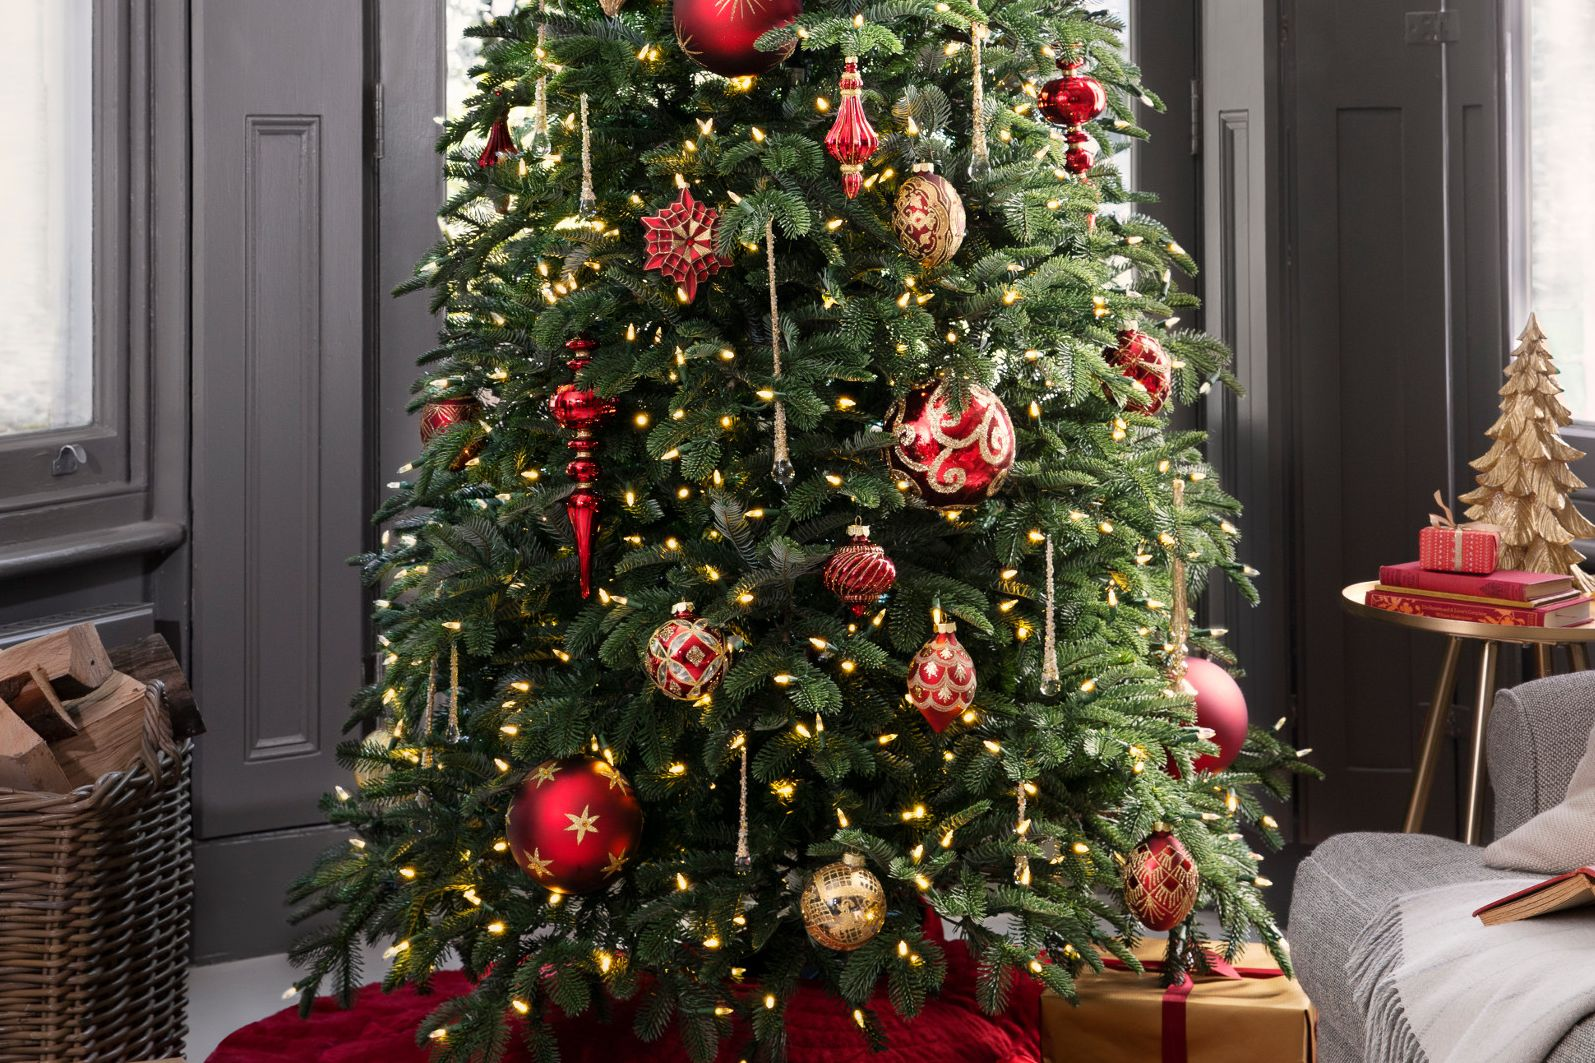 realistic artificial Christmas tree with lights and red and gold decorations